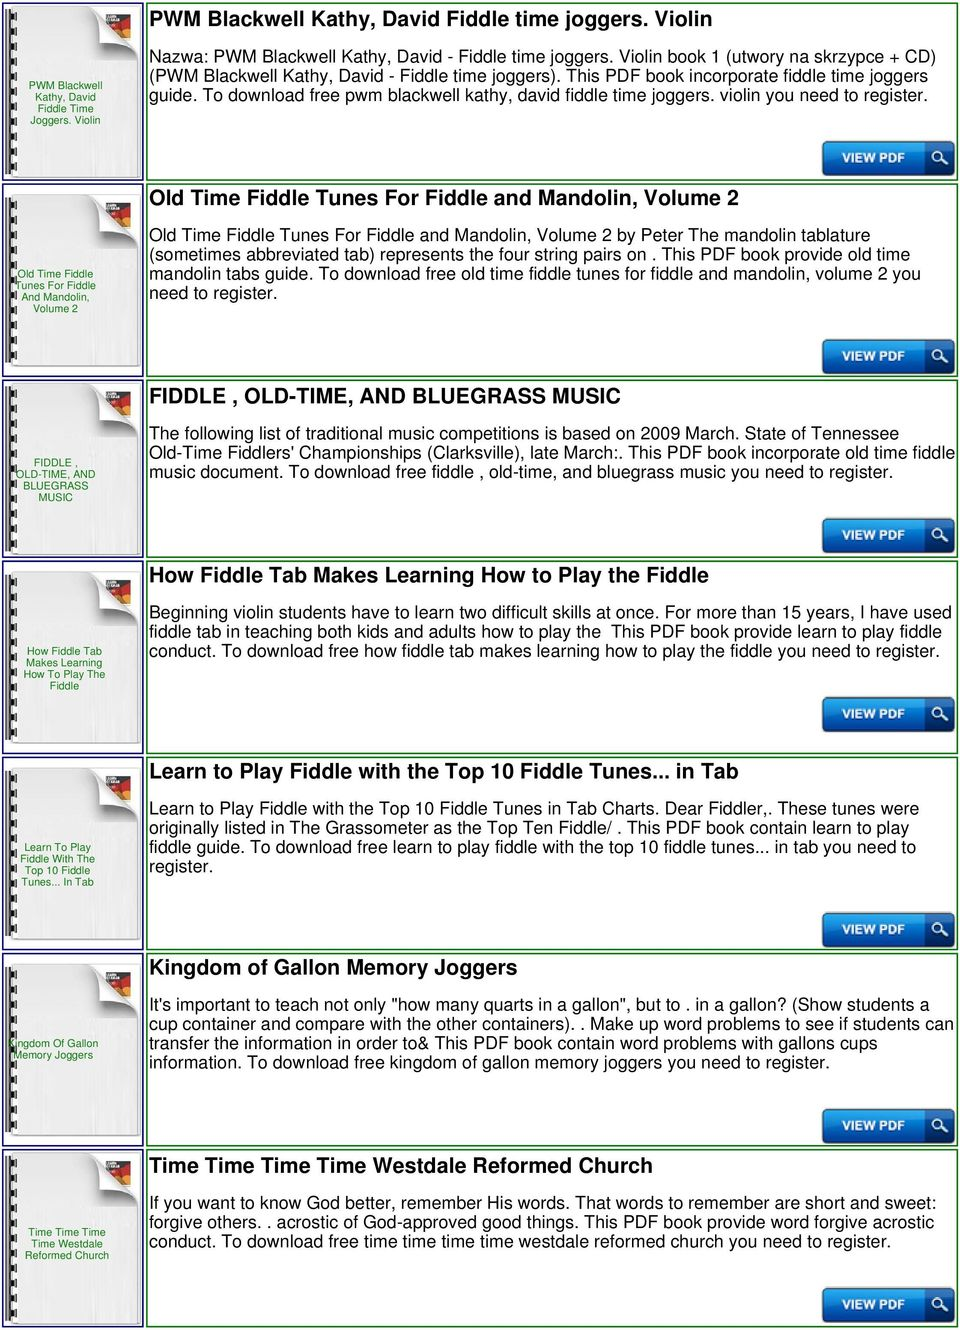 Fiddle Time Joggers Download or Read Online ebook fiddle time